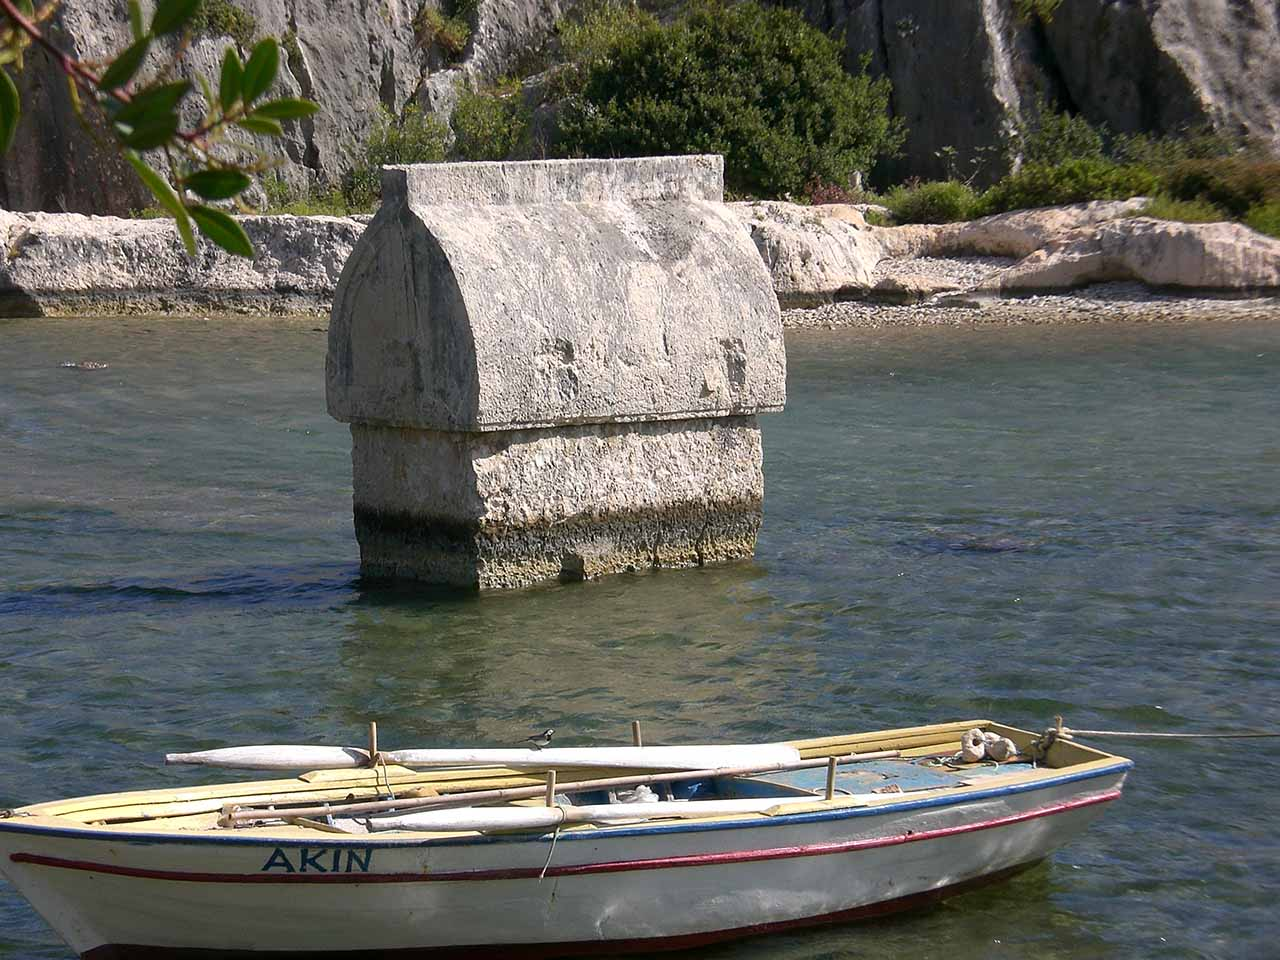 sarcophogus and boat Kekova